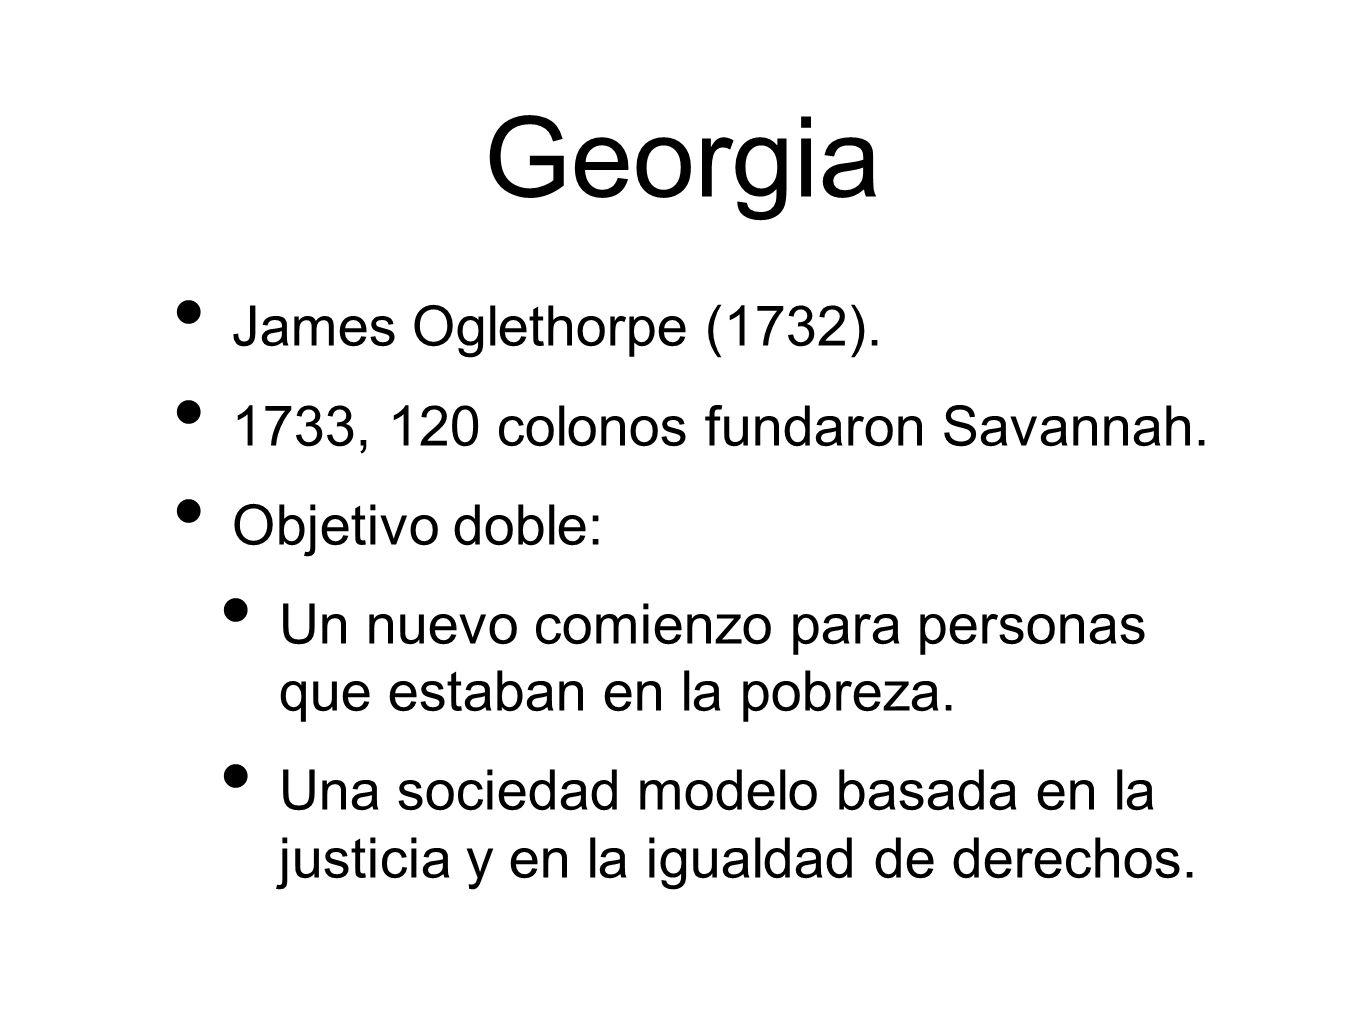 Georgia James Oglethorpe (1732). 1733, 120 colonos fundaron Savannah.